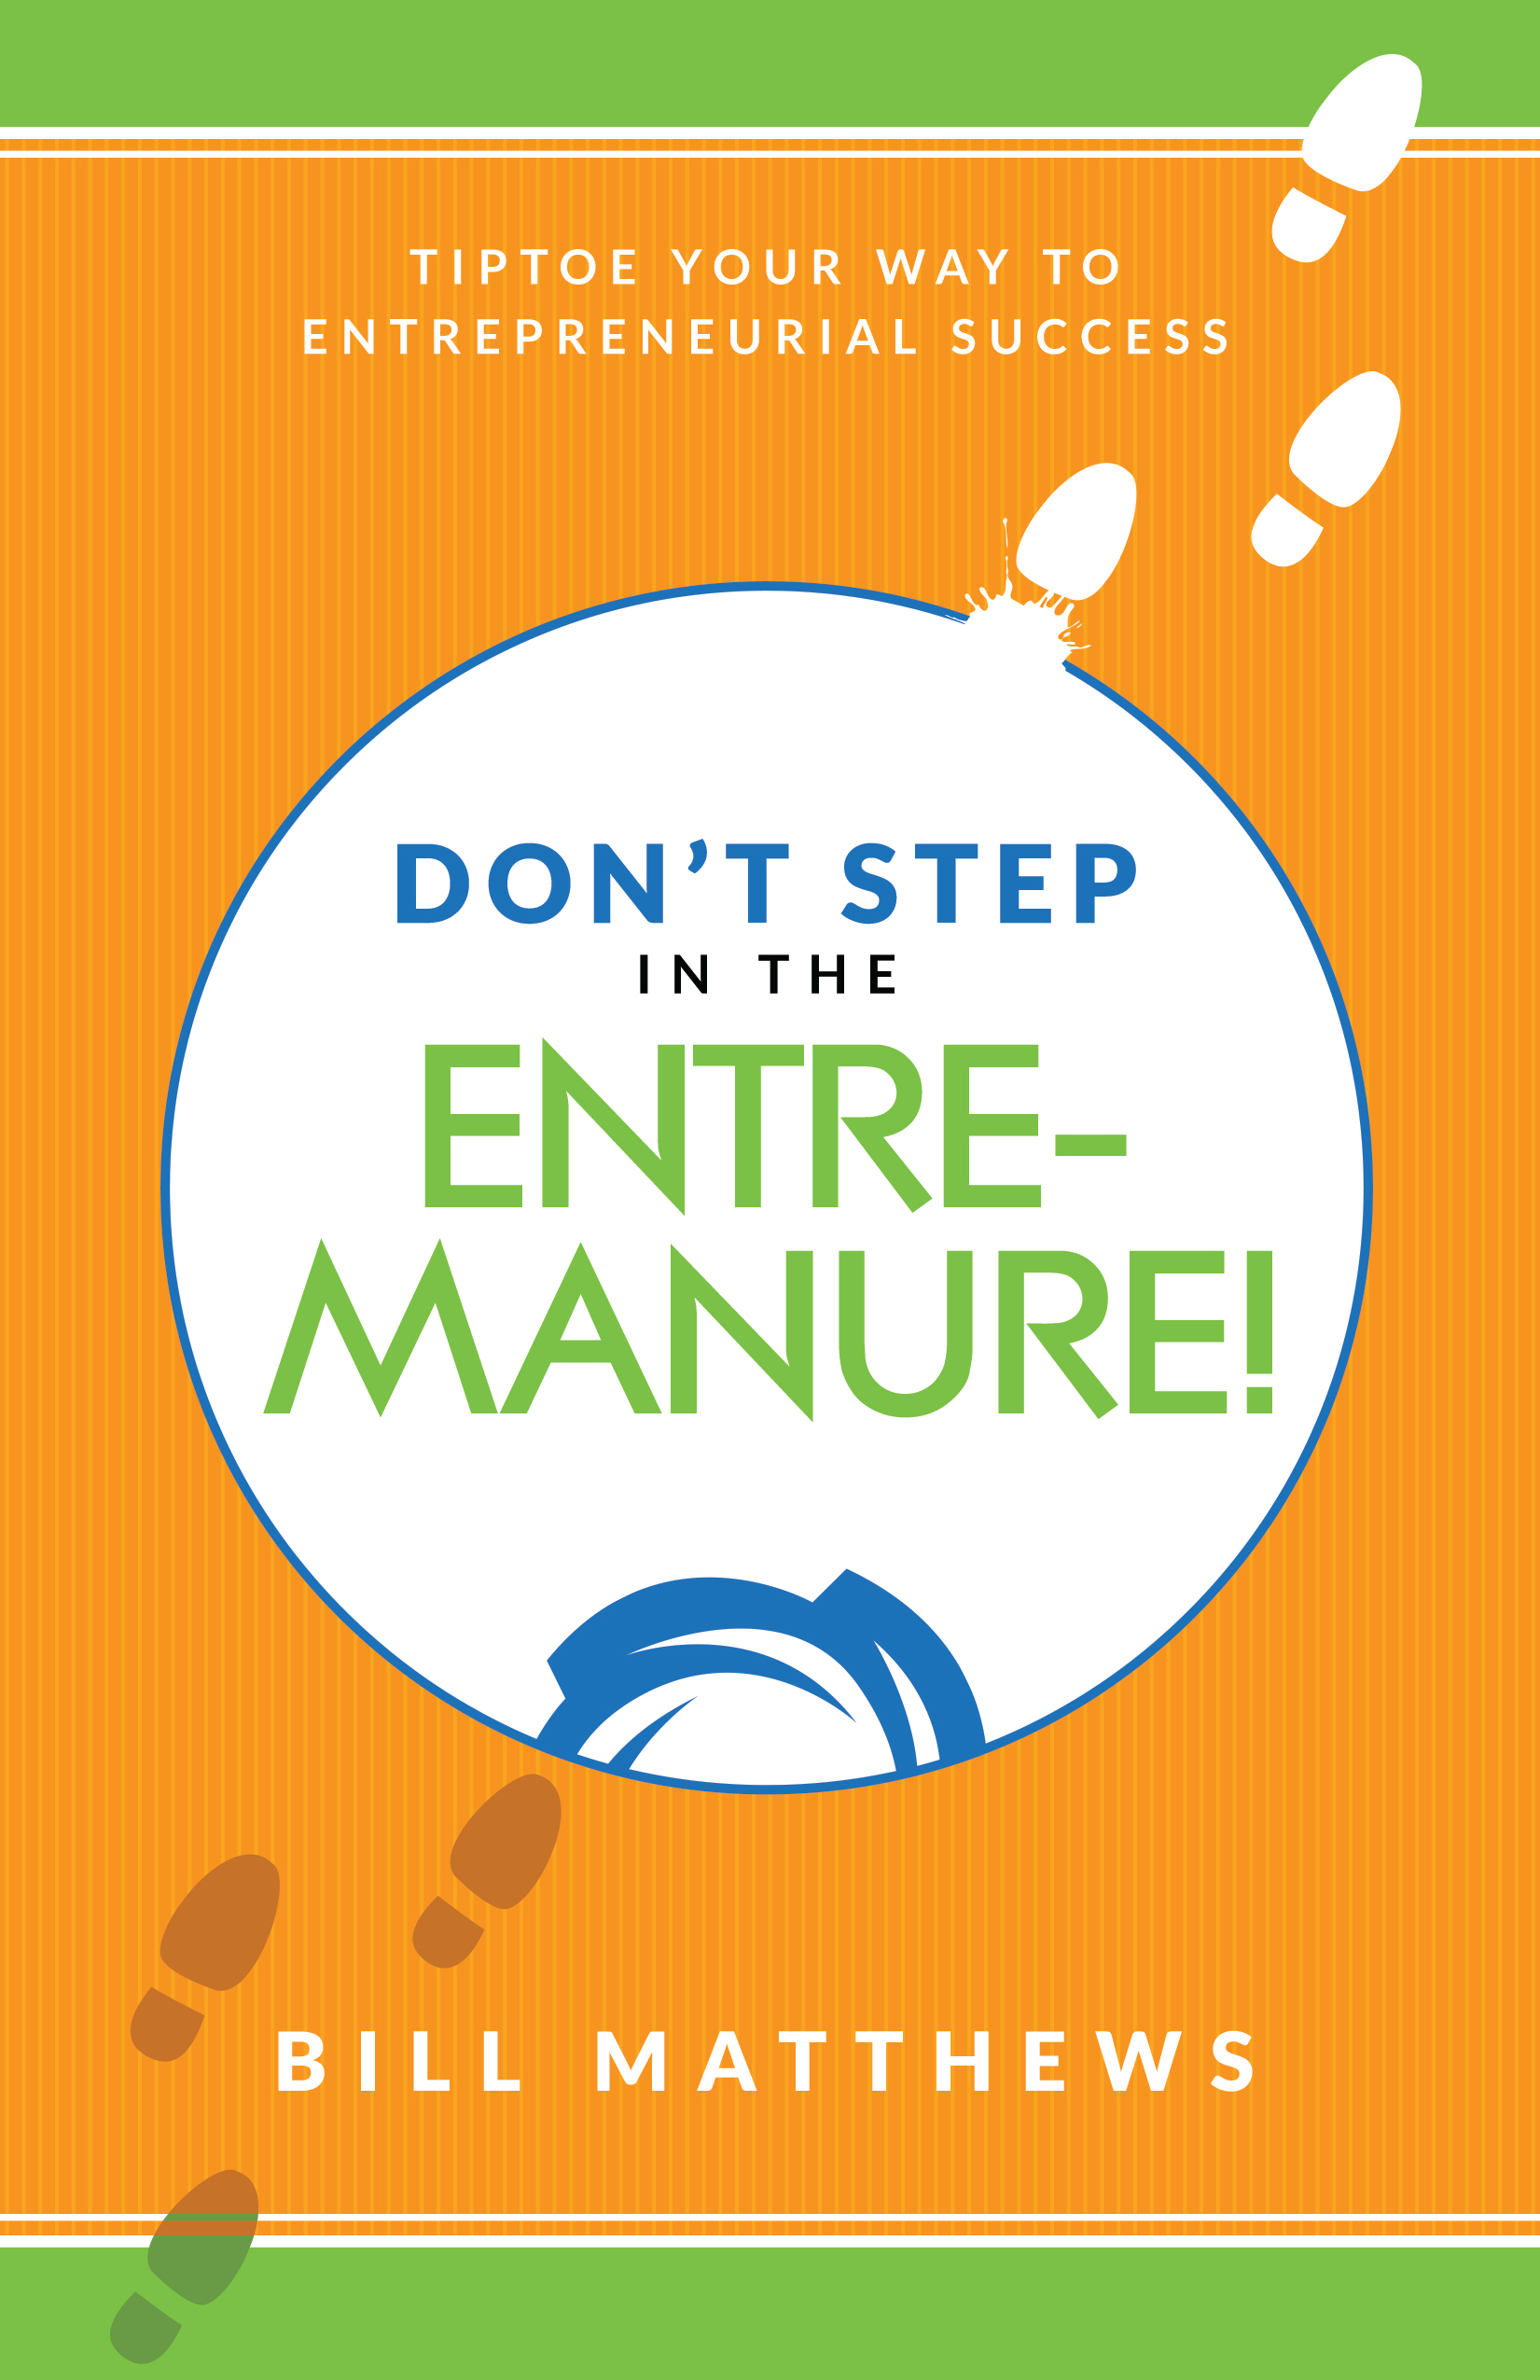 Don't Step in the Entremanure - By Bill Matthews